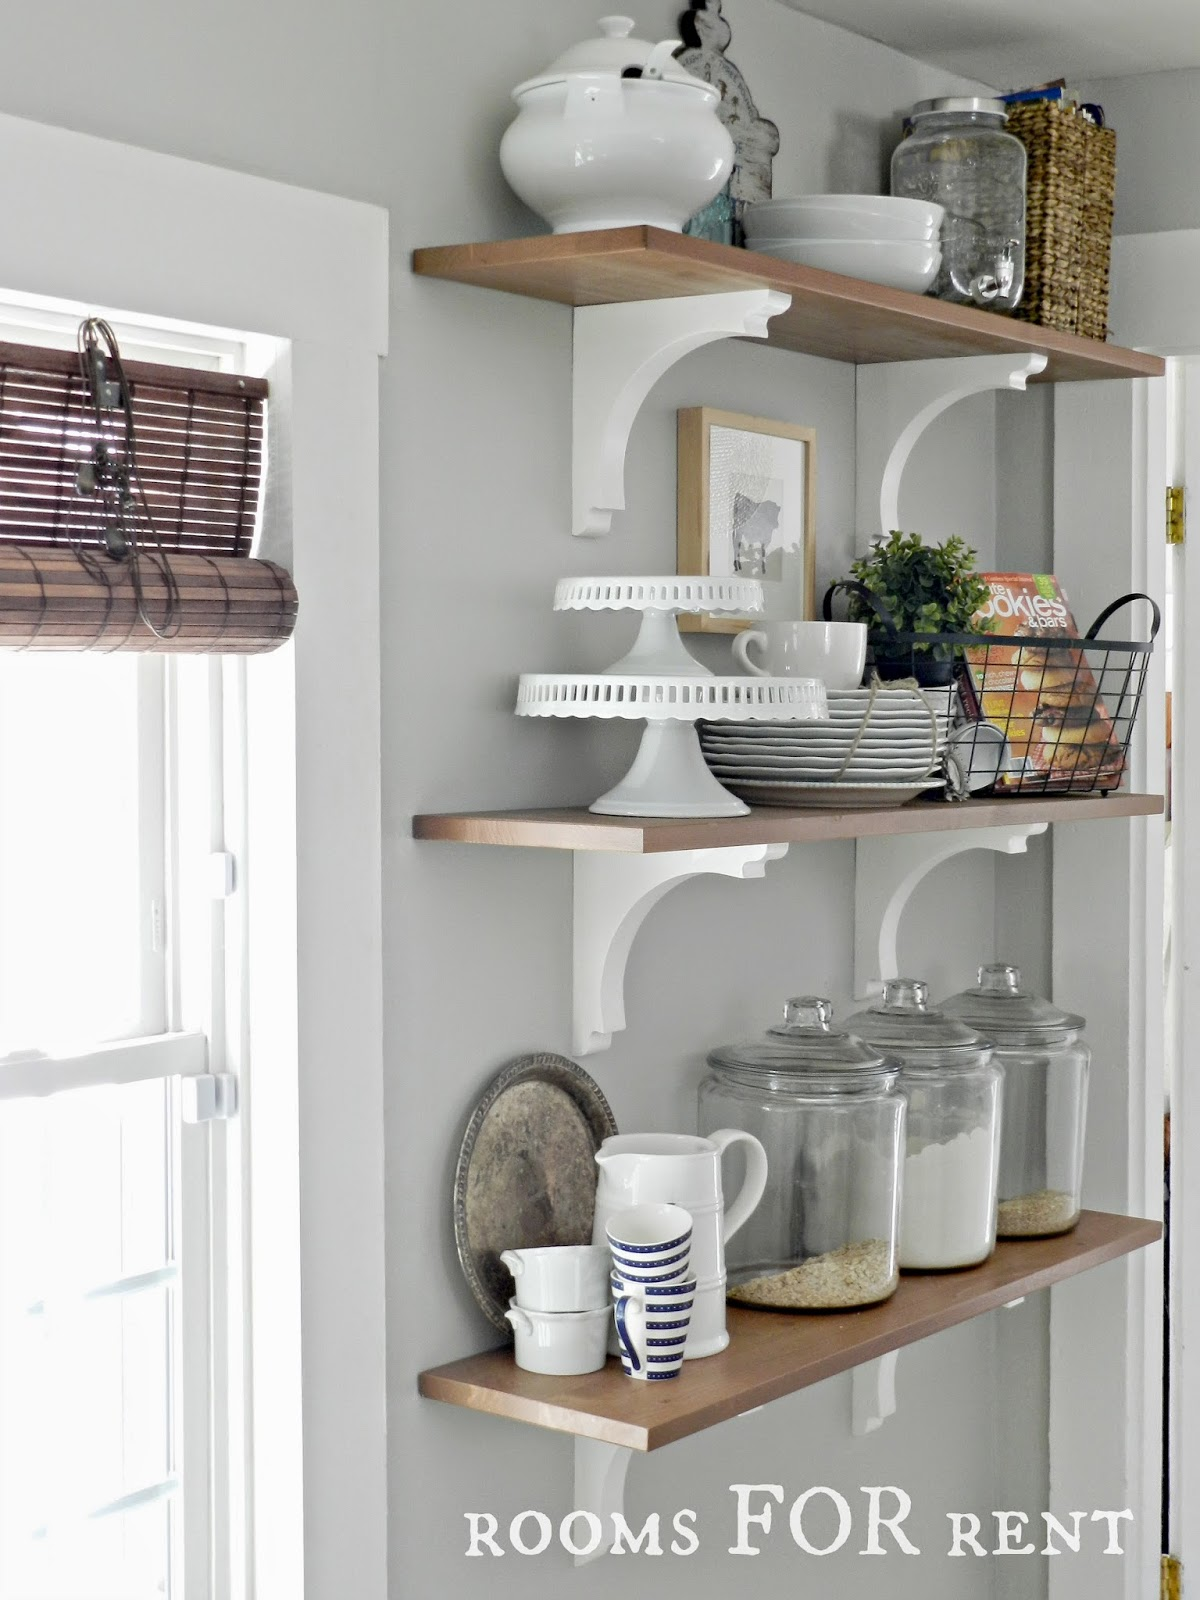 Decorating with glass canisters in the kitchen (Photo via Rooms FOR Rent) | anderson + grant